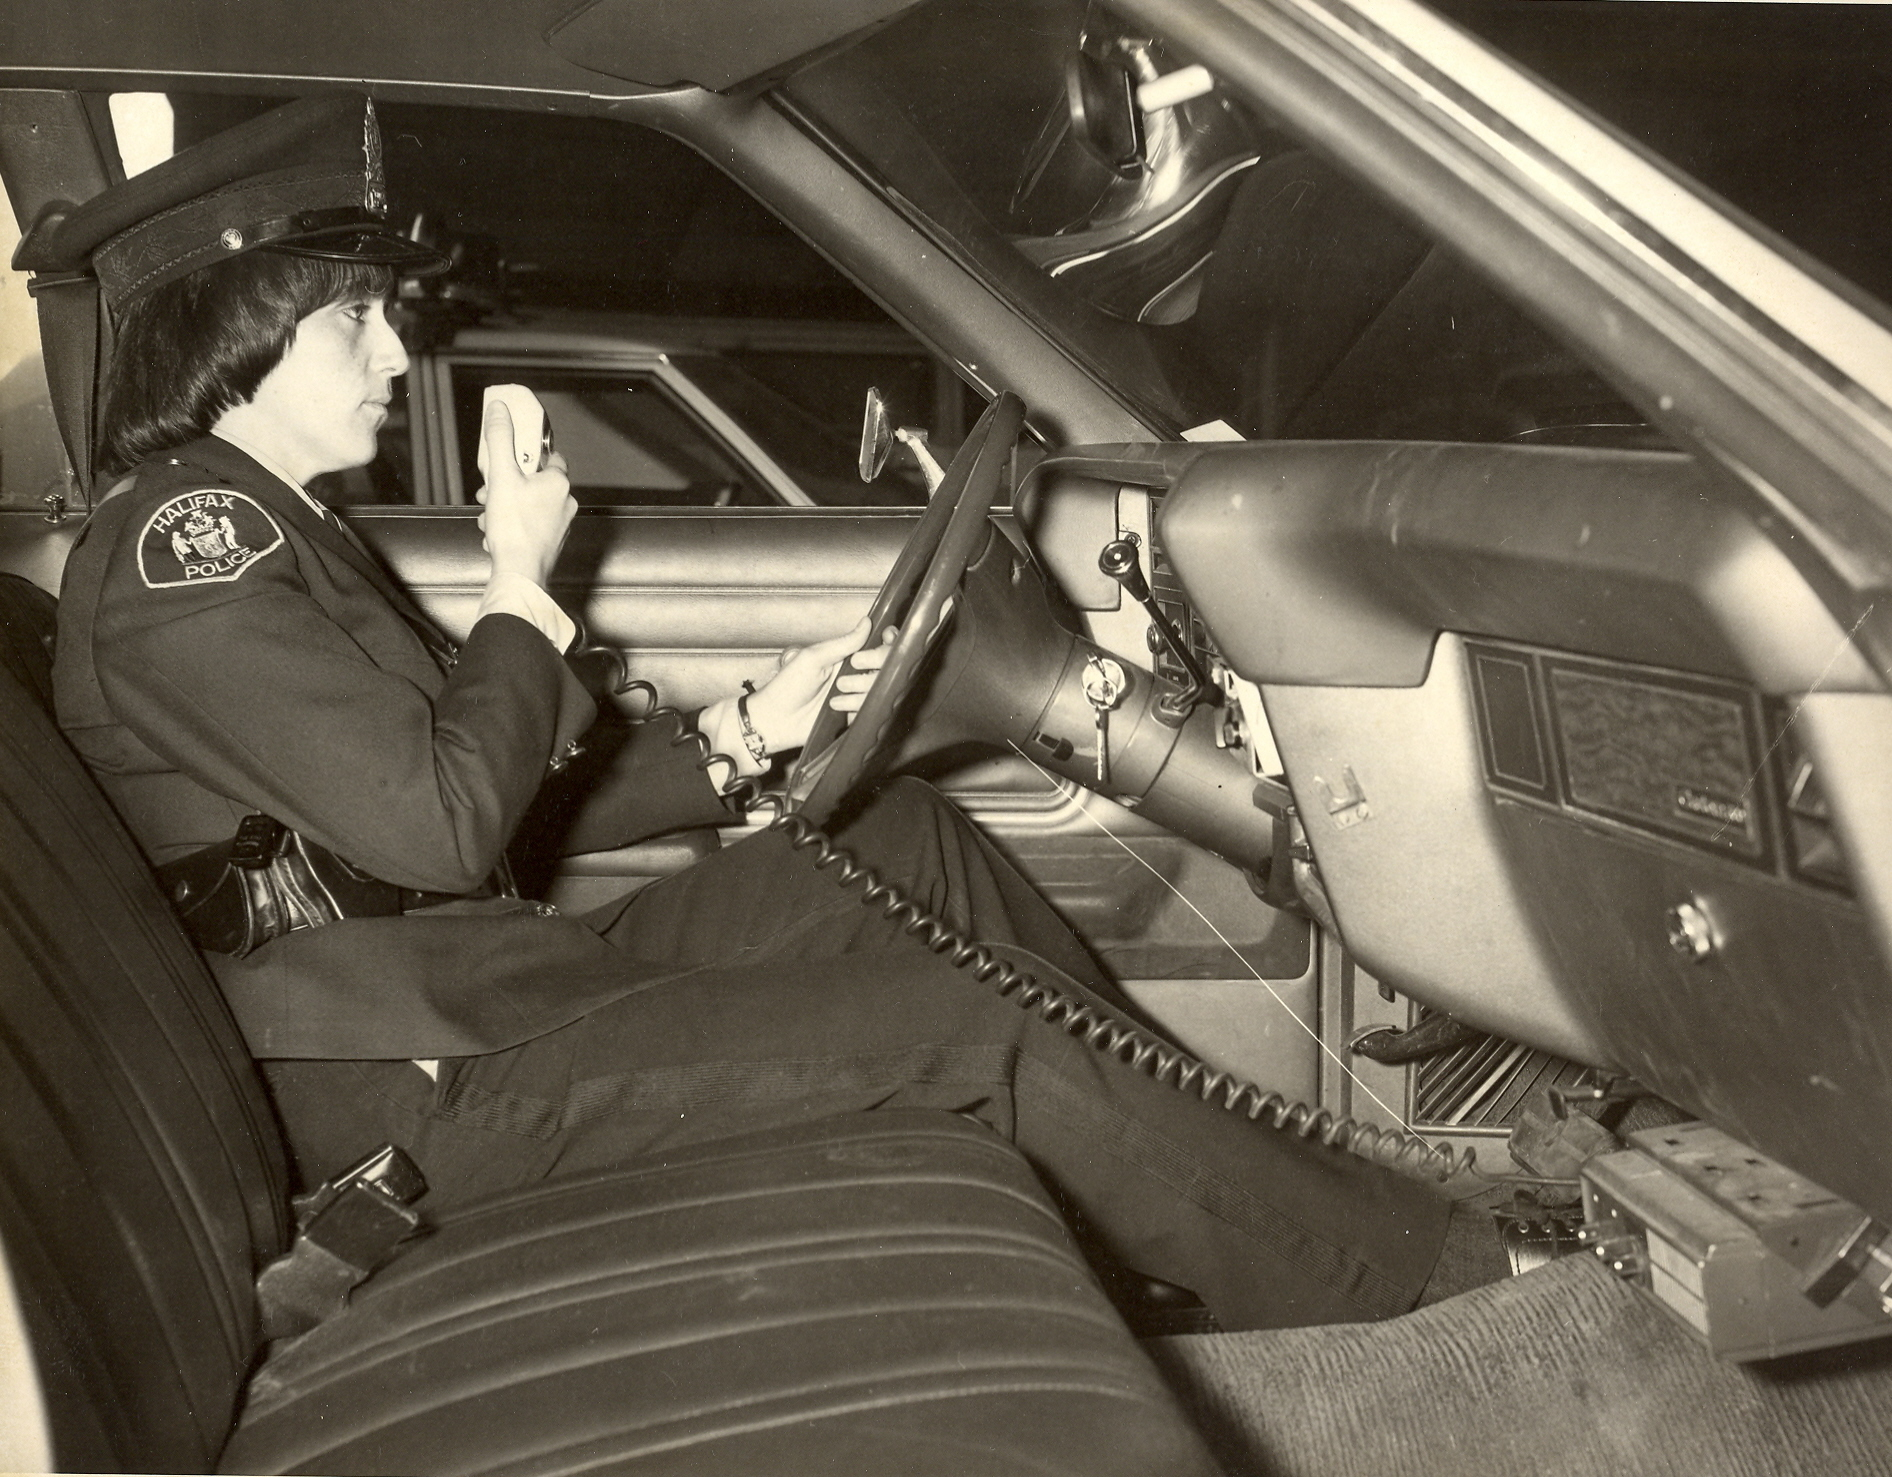 Black and white photo of female officer sitting in car talking on radio